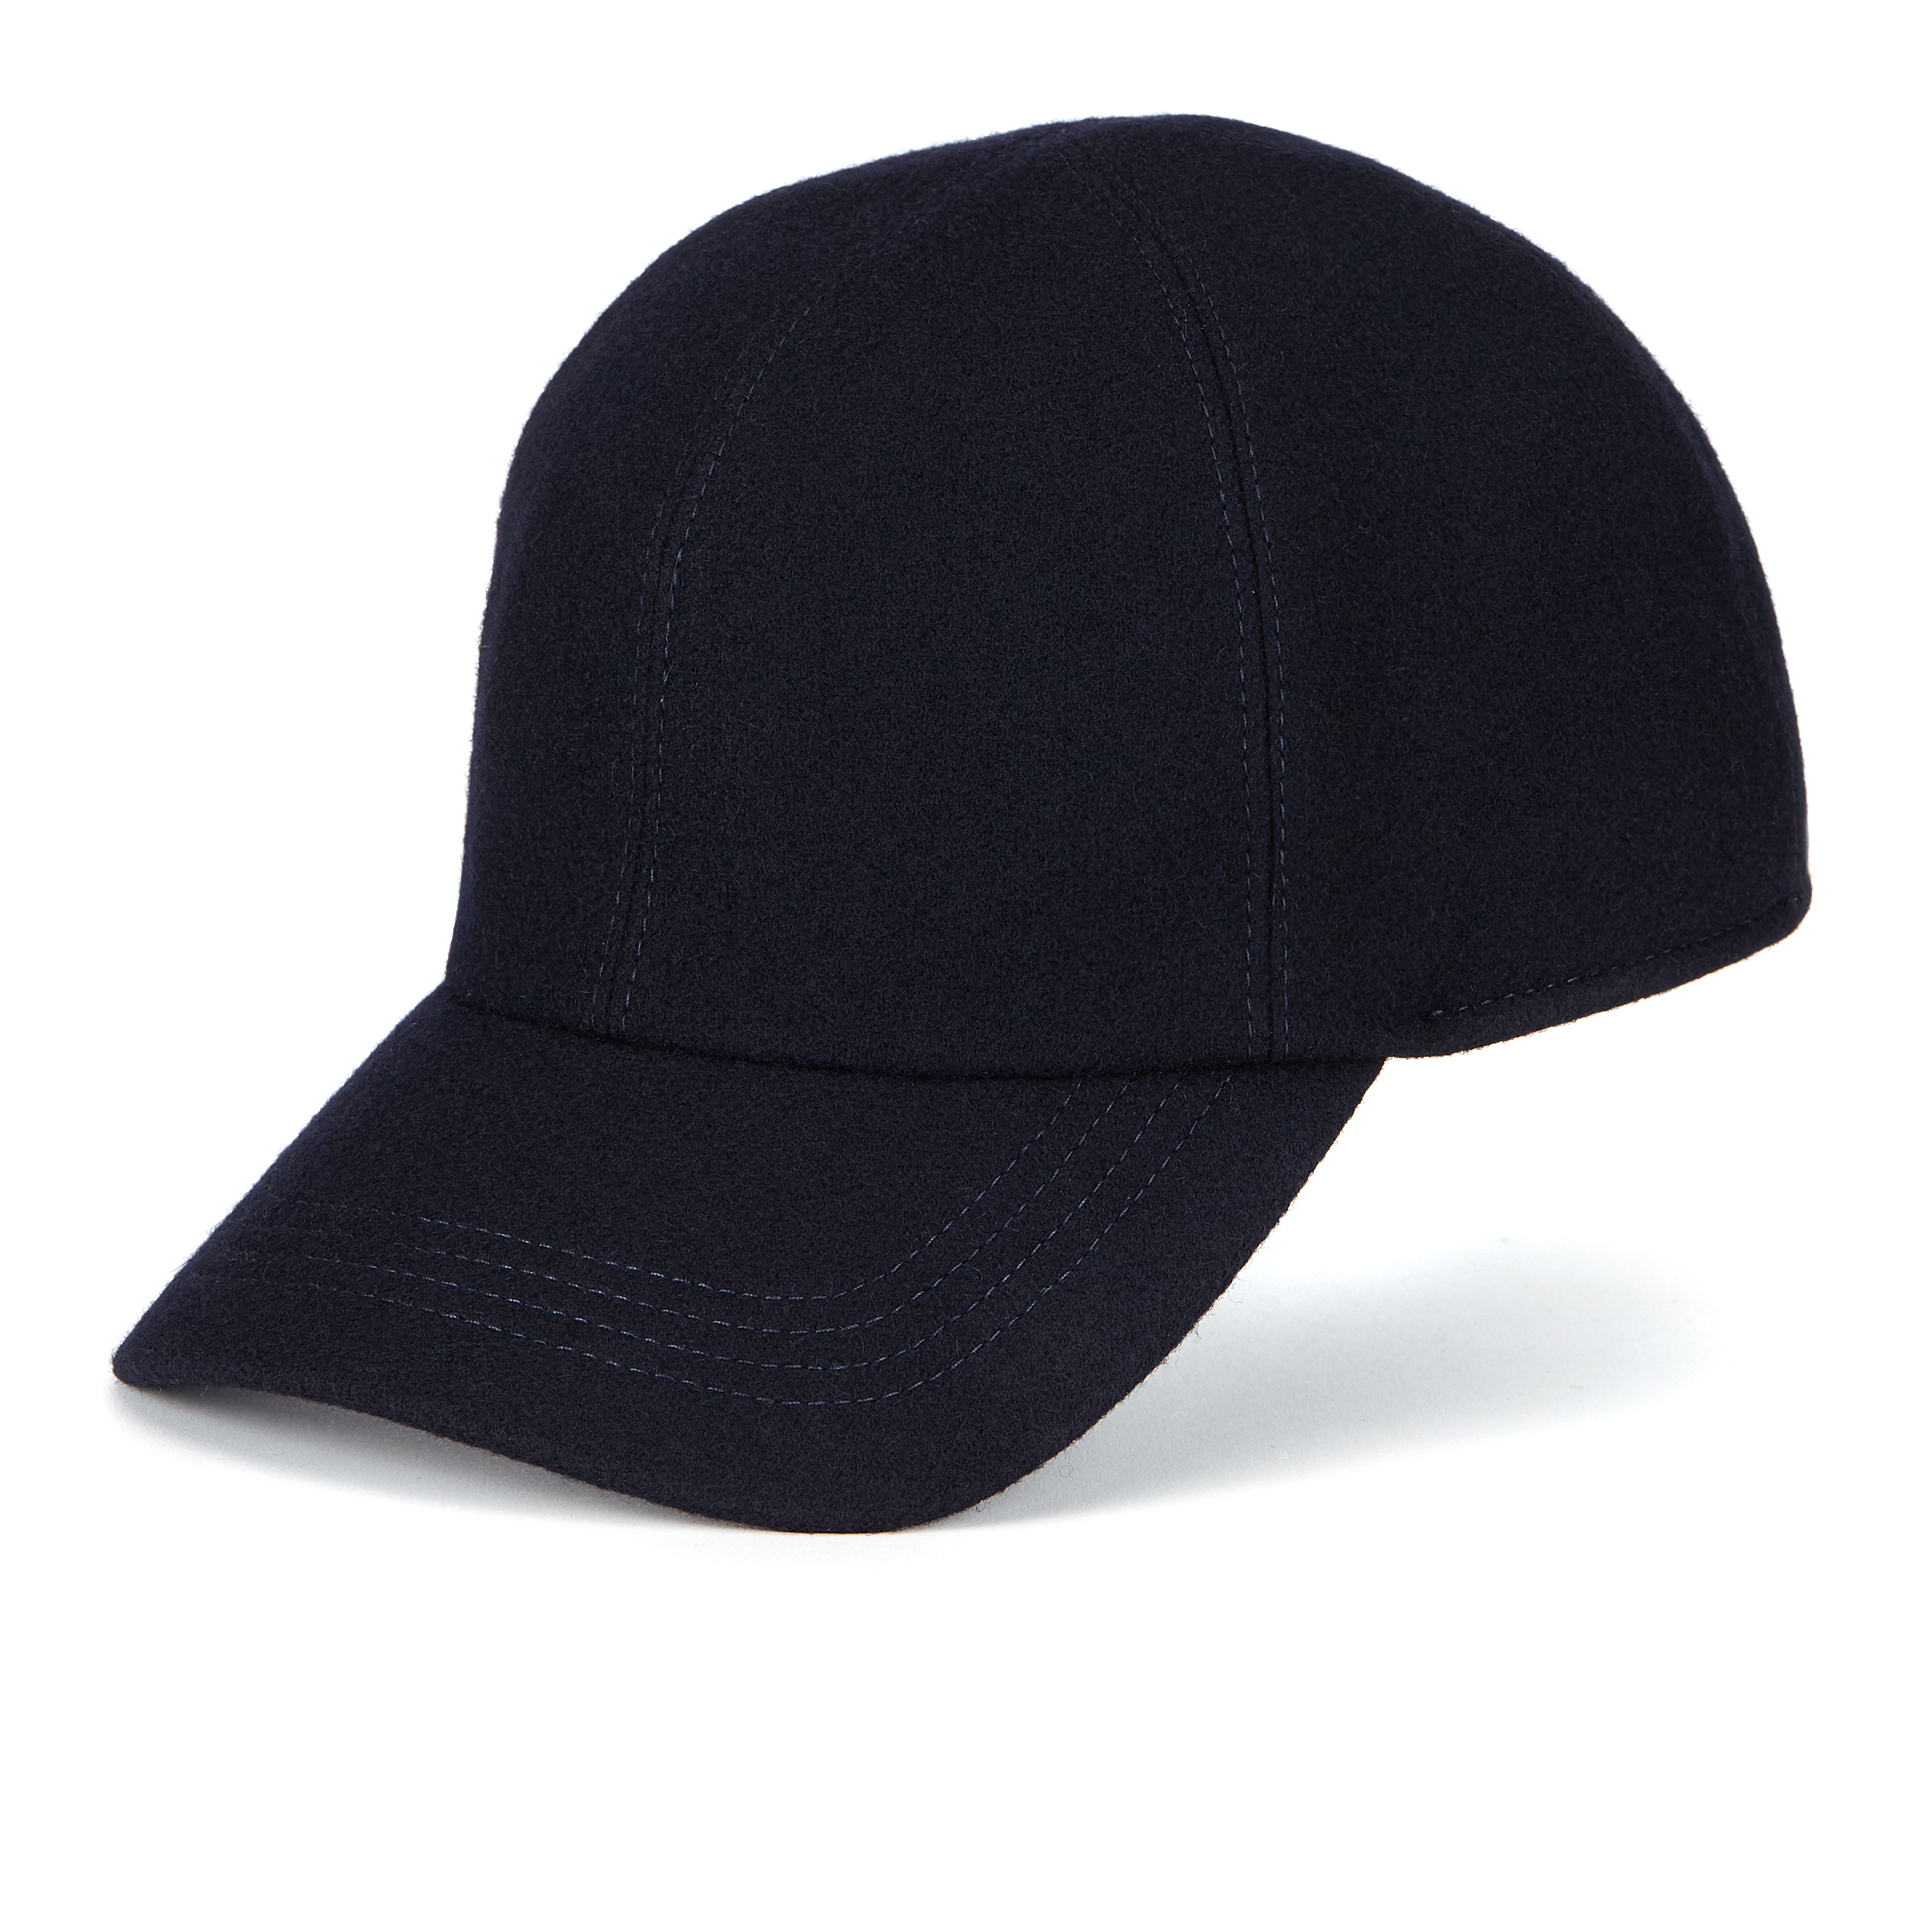 Ysl Hats for Sale | Wool Baseball Cap | Cooperstown Cap Company